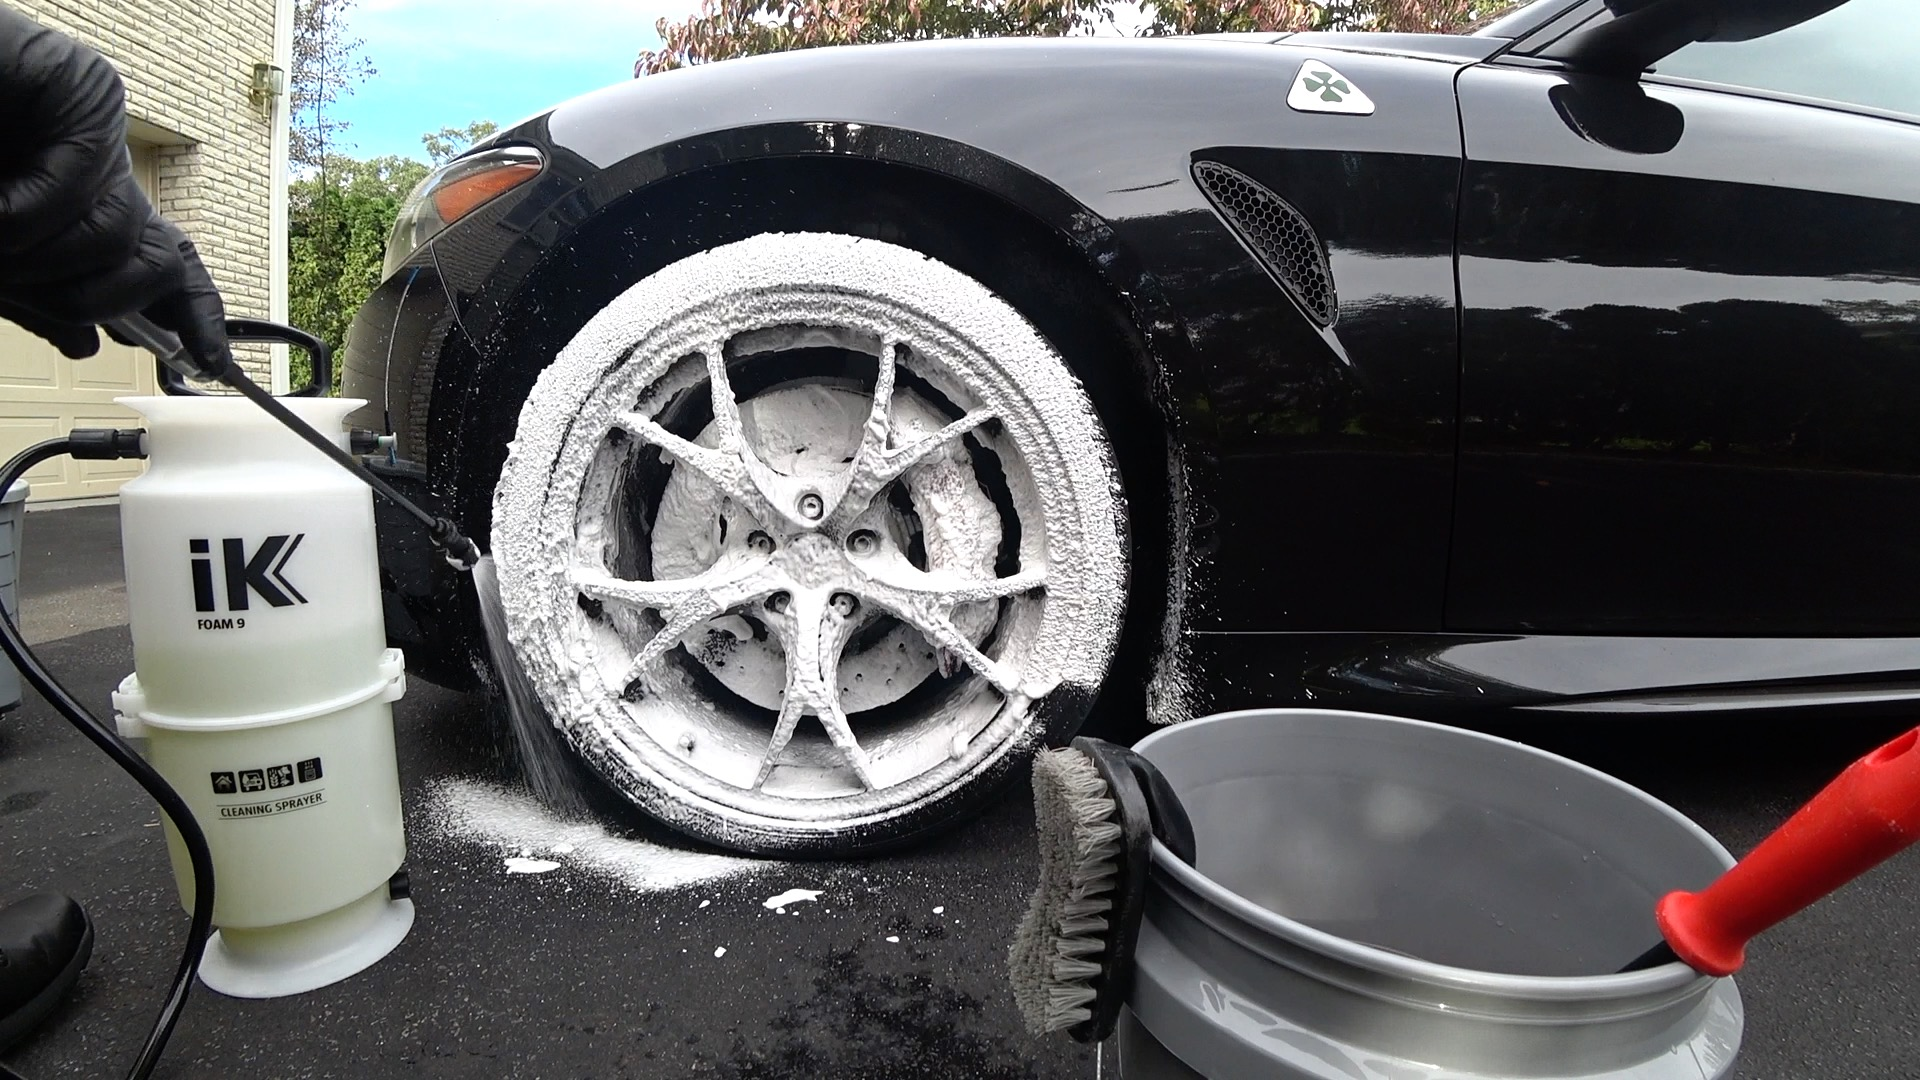 The New Auto Fanatic Professional Wheel Cleaning Foam